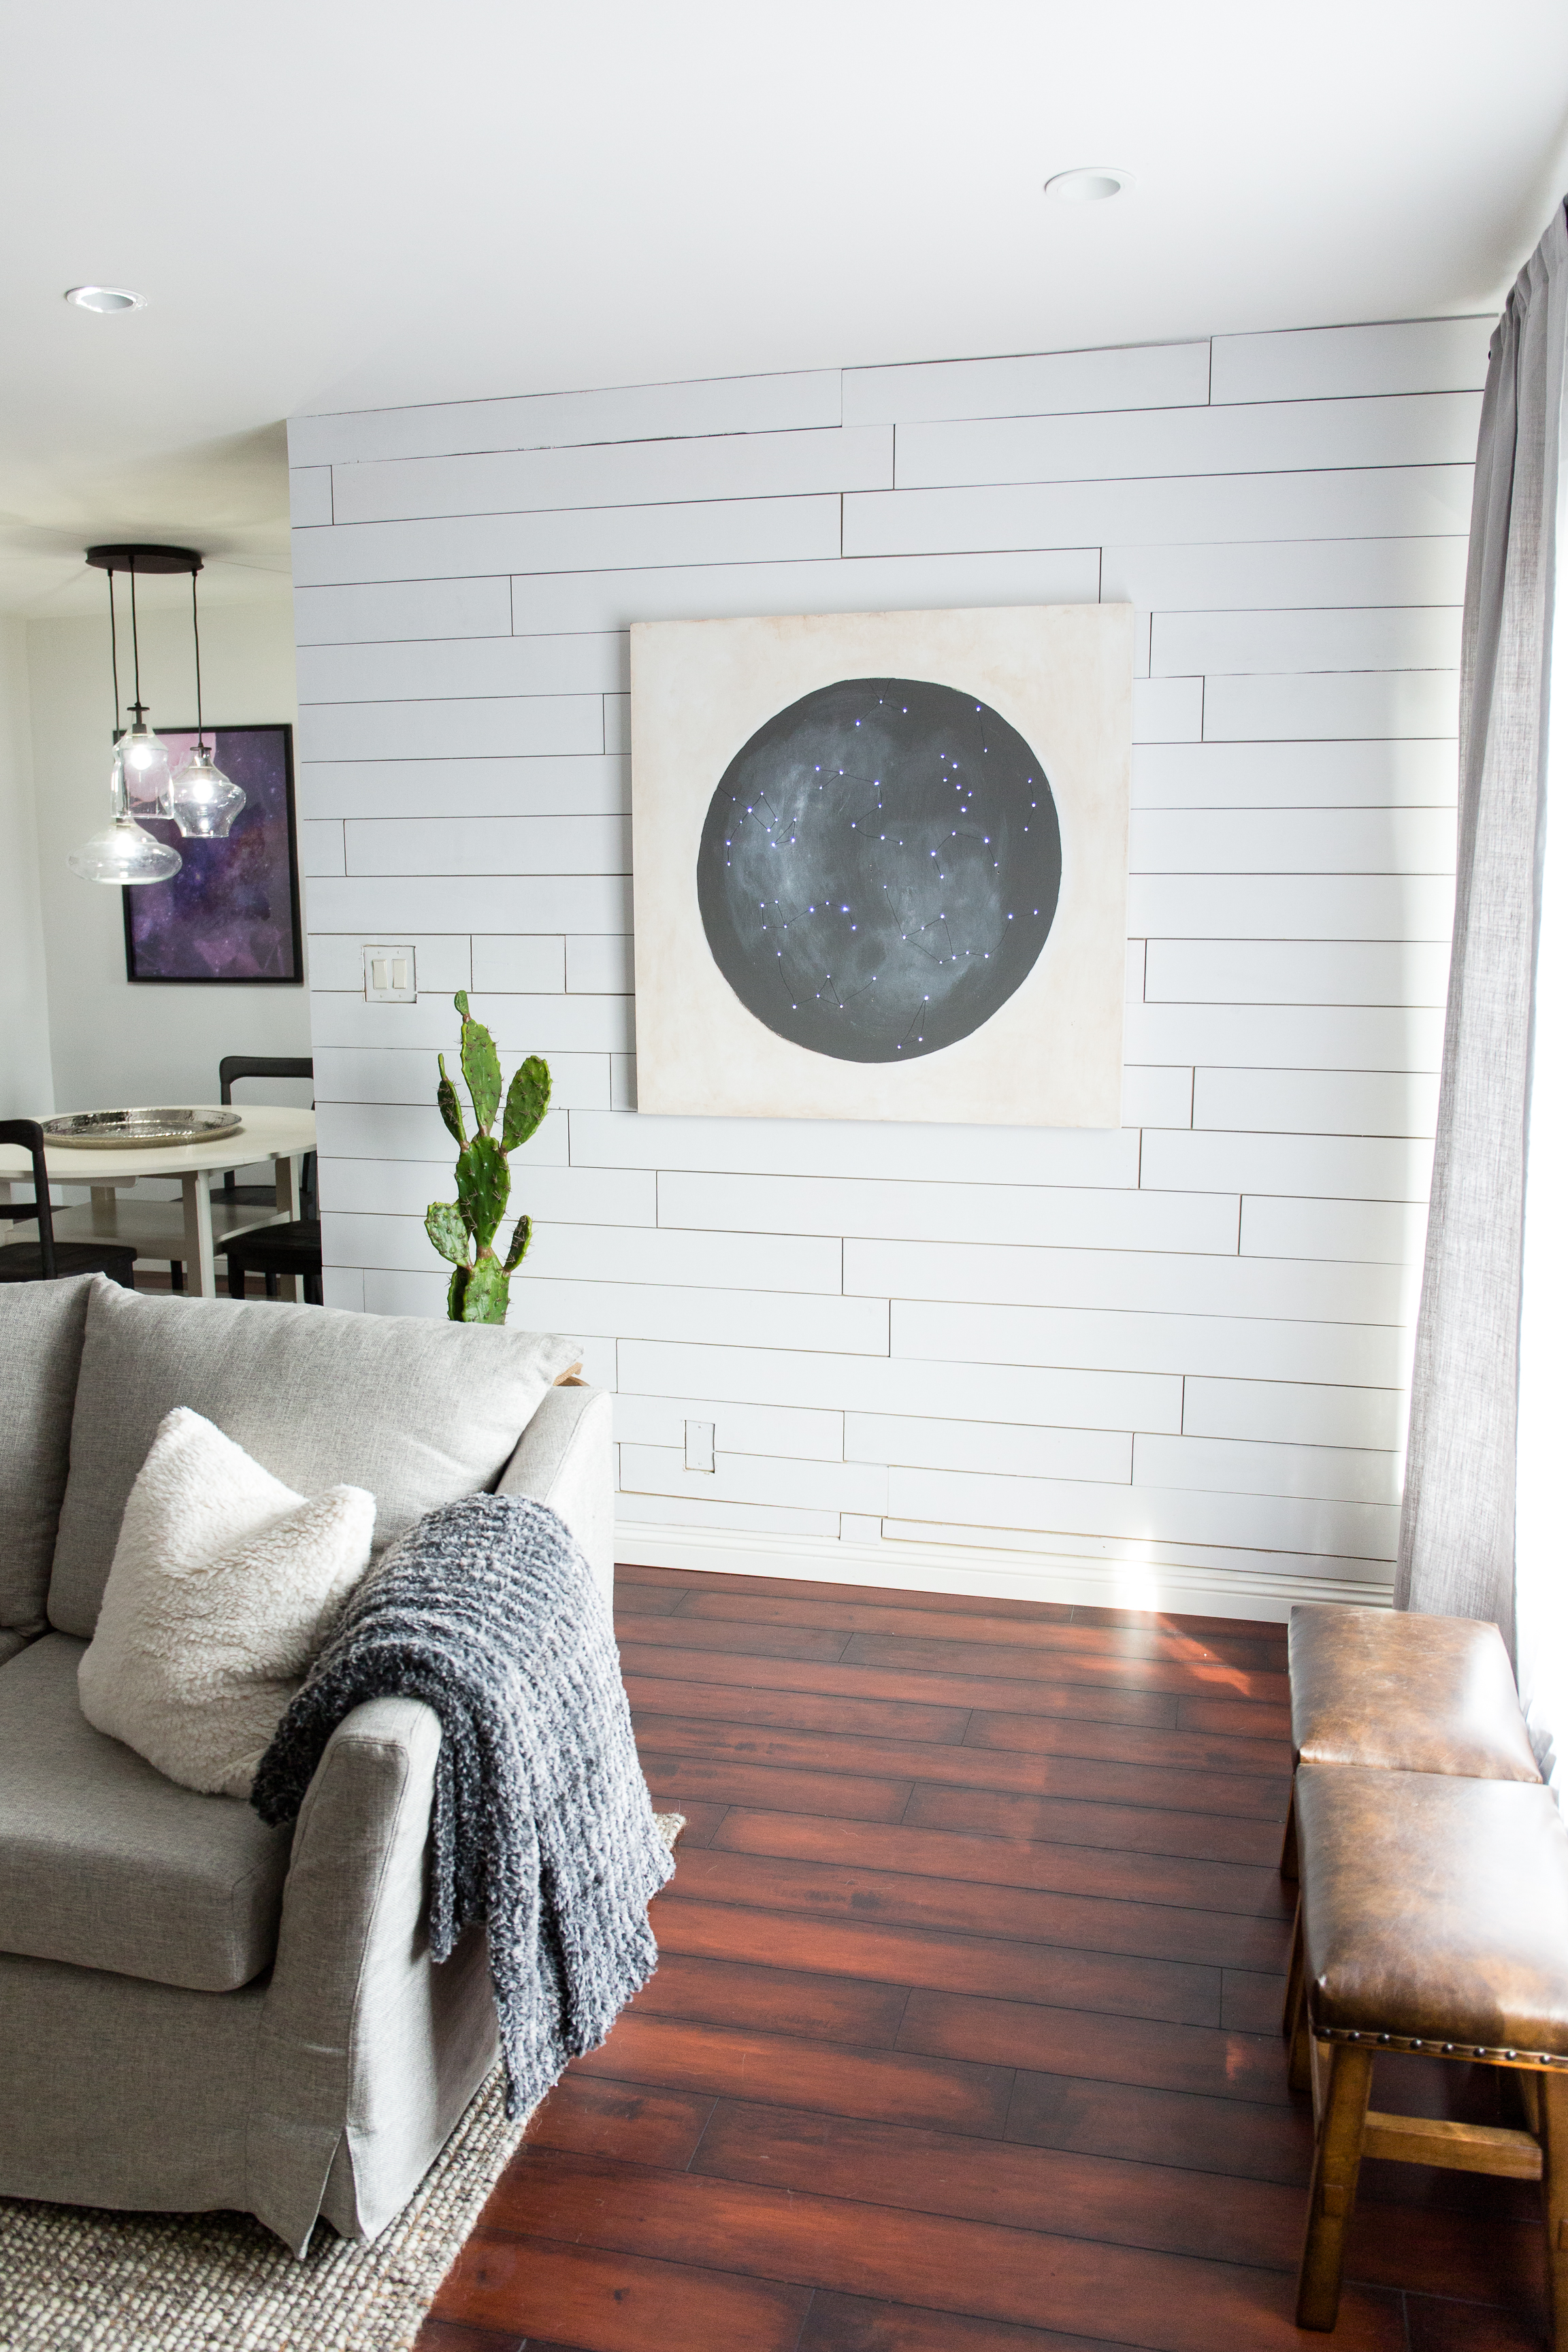 ... Farm House, Or Generally Cozy Vibe, I Bet Your Home Decor Pinterest  Boards Are Full Of Images Of Understatedly Stunning Shiplap Walls.